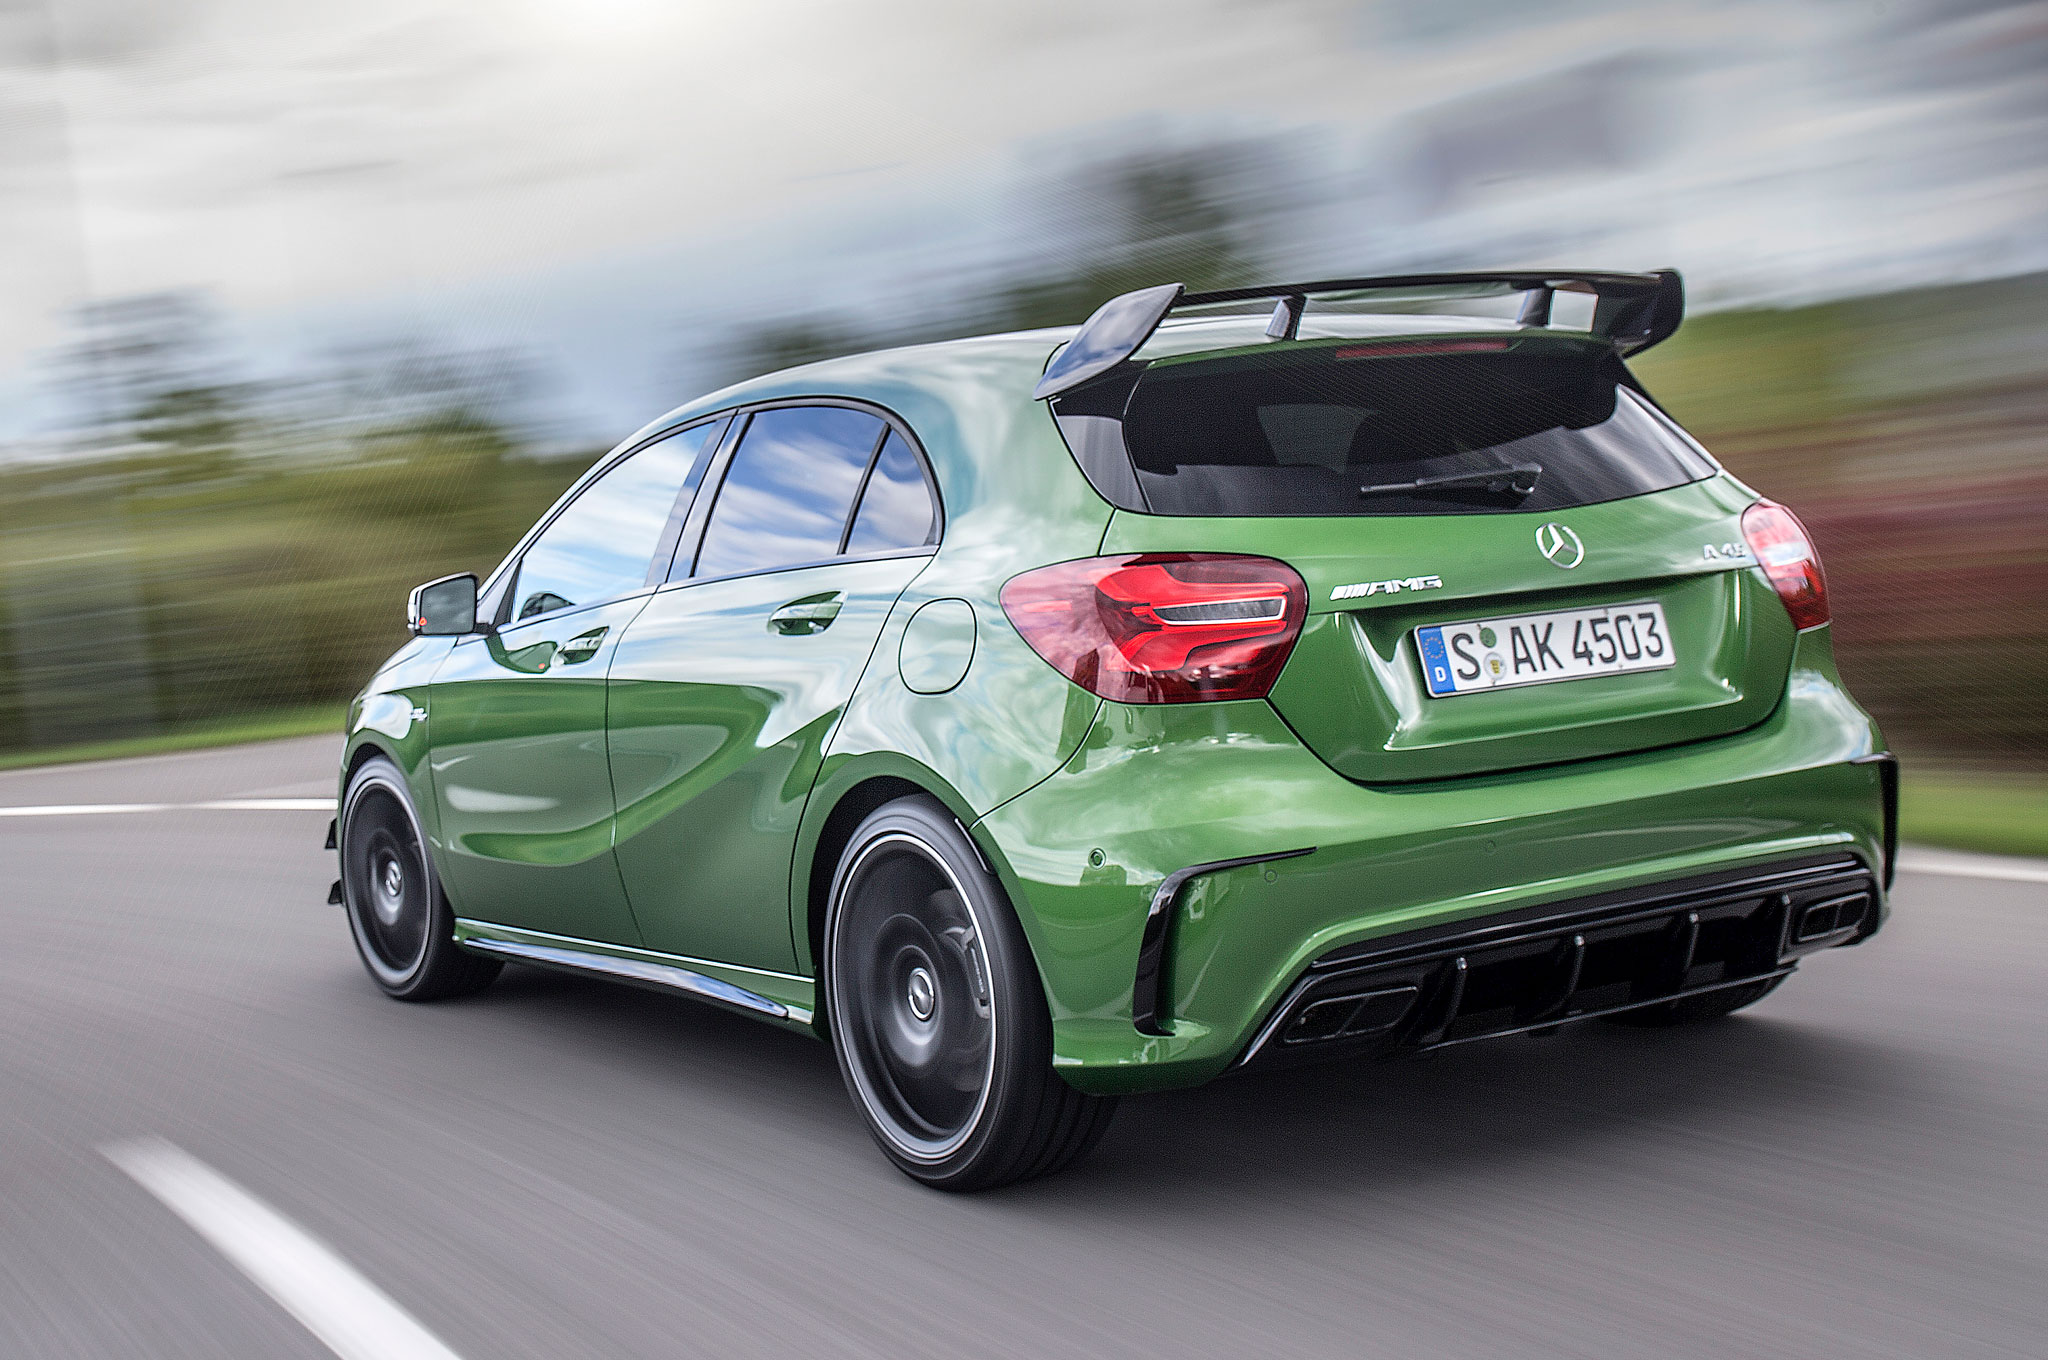 Image gallery 2016 a45 amg for Mercedes benz a45 amg